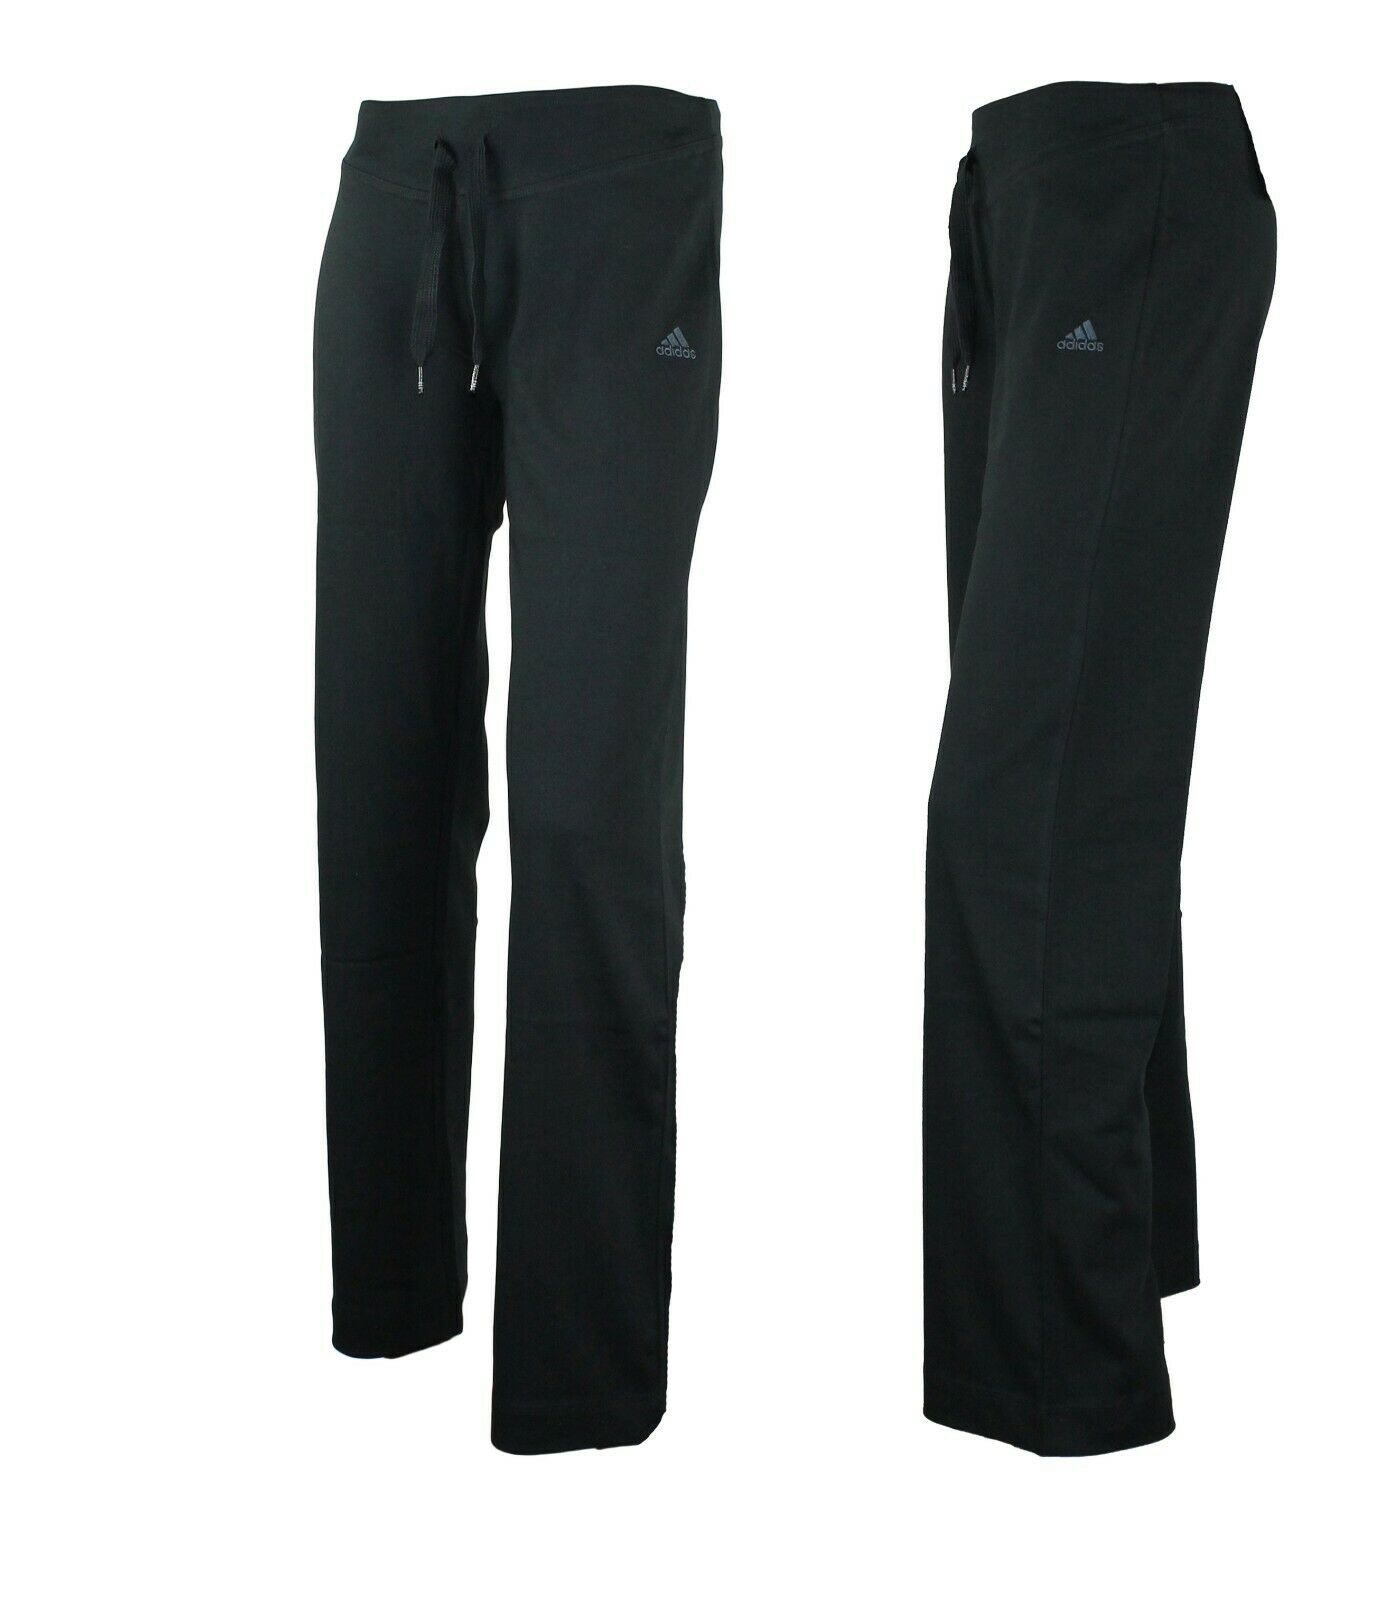 190b2750908112 ... adidas Damen ESS Trainingshose schwarz Freizeit- Jogginghose Essentials  Gr.32-48